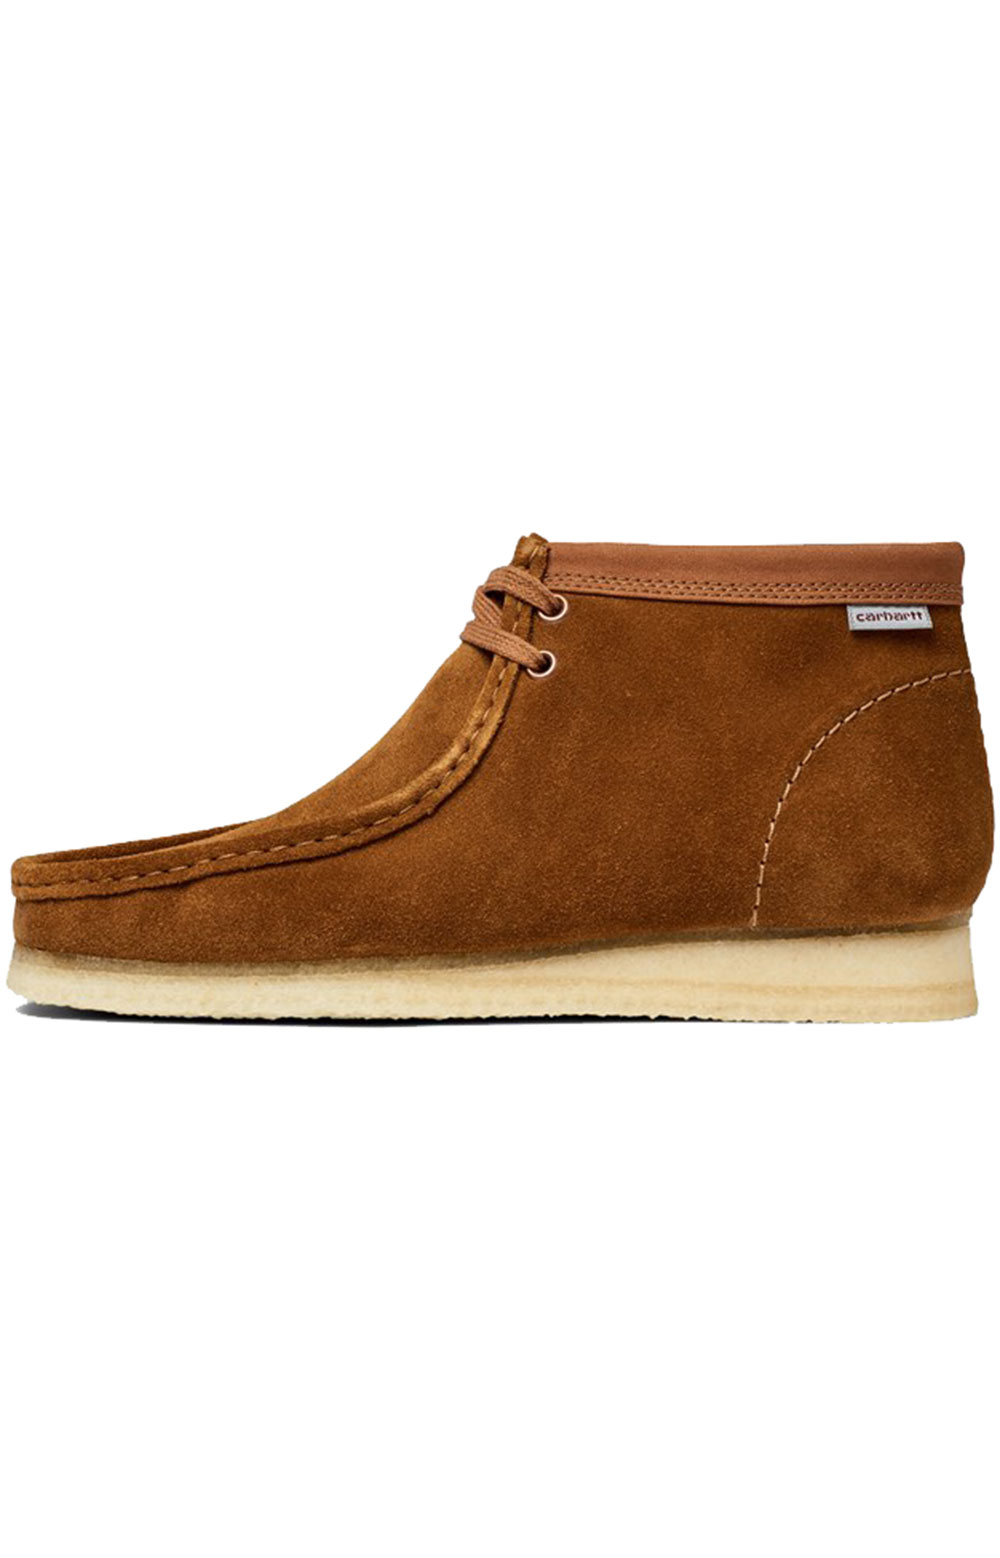 (26146193) Wallabee Boot - Brown 5